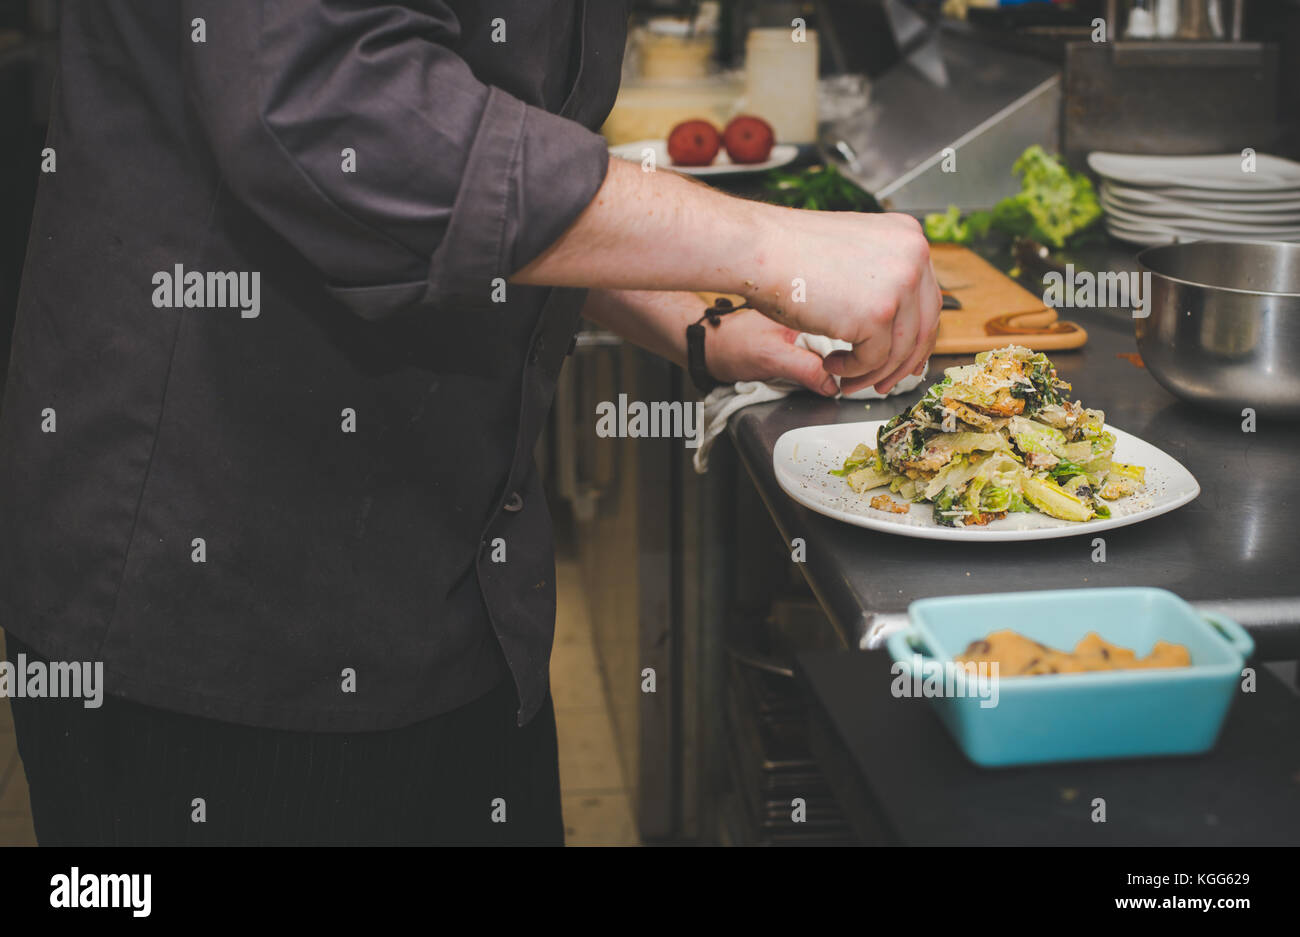 A chef prepares food in the kitchen of a restaurant - Stock Image